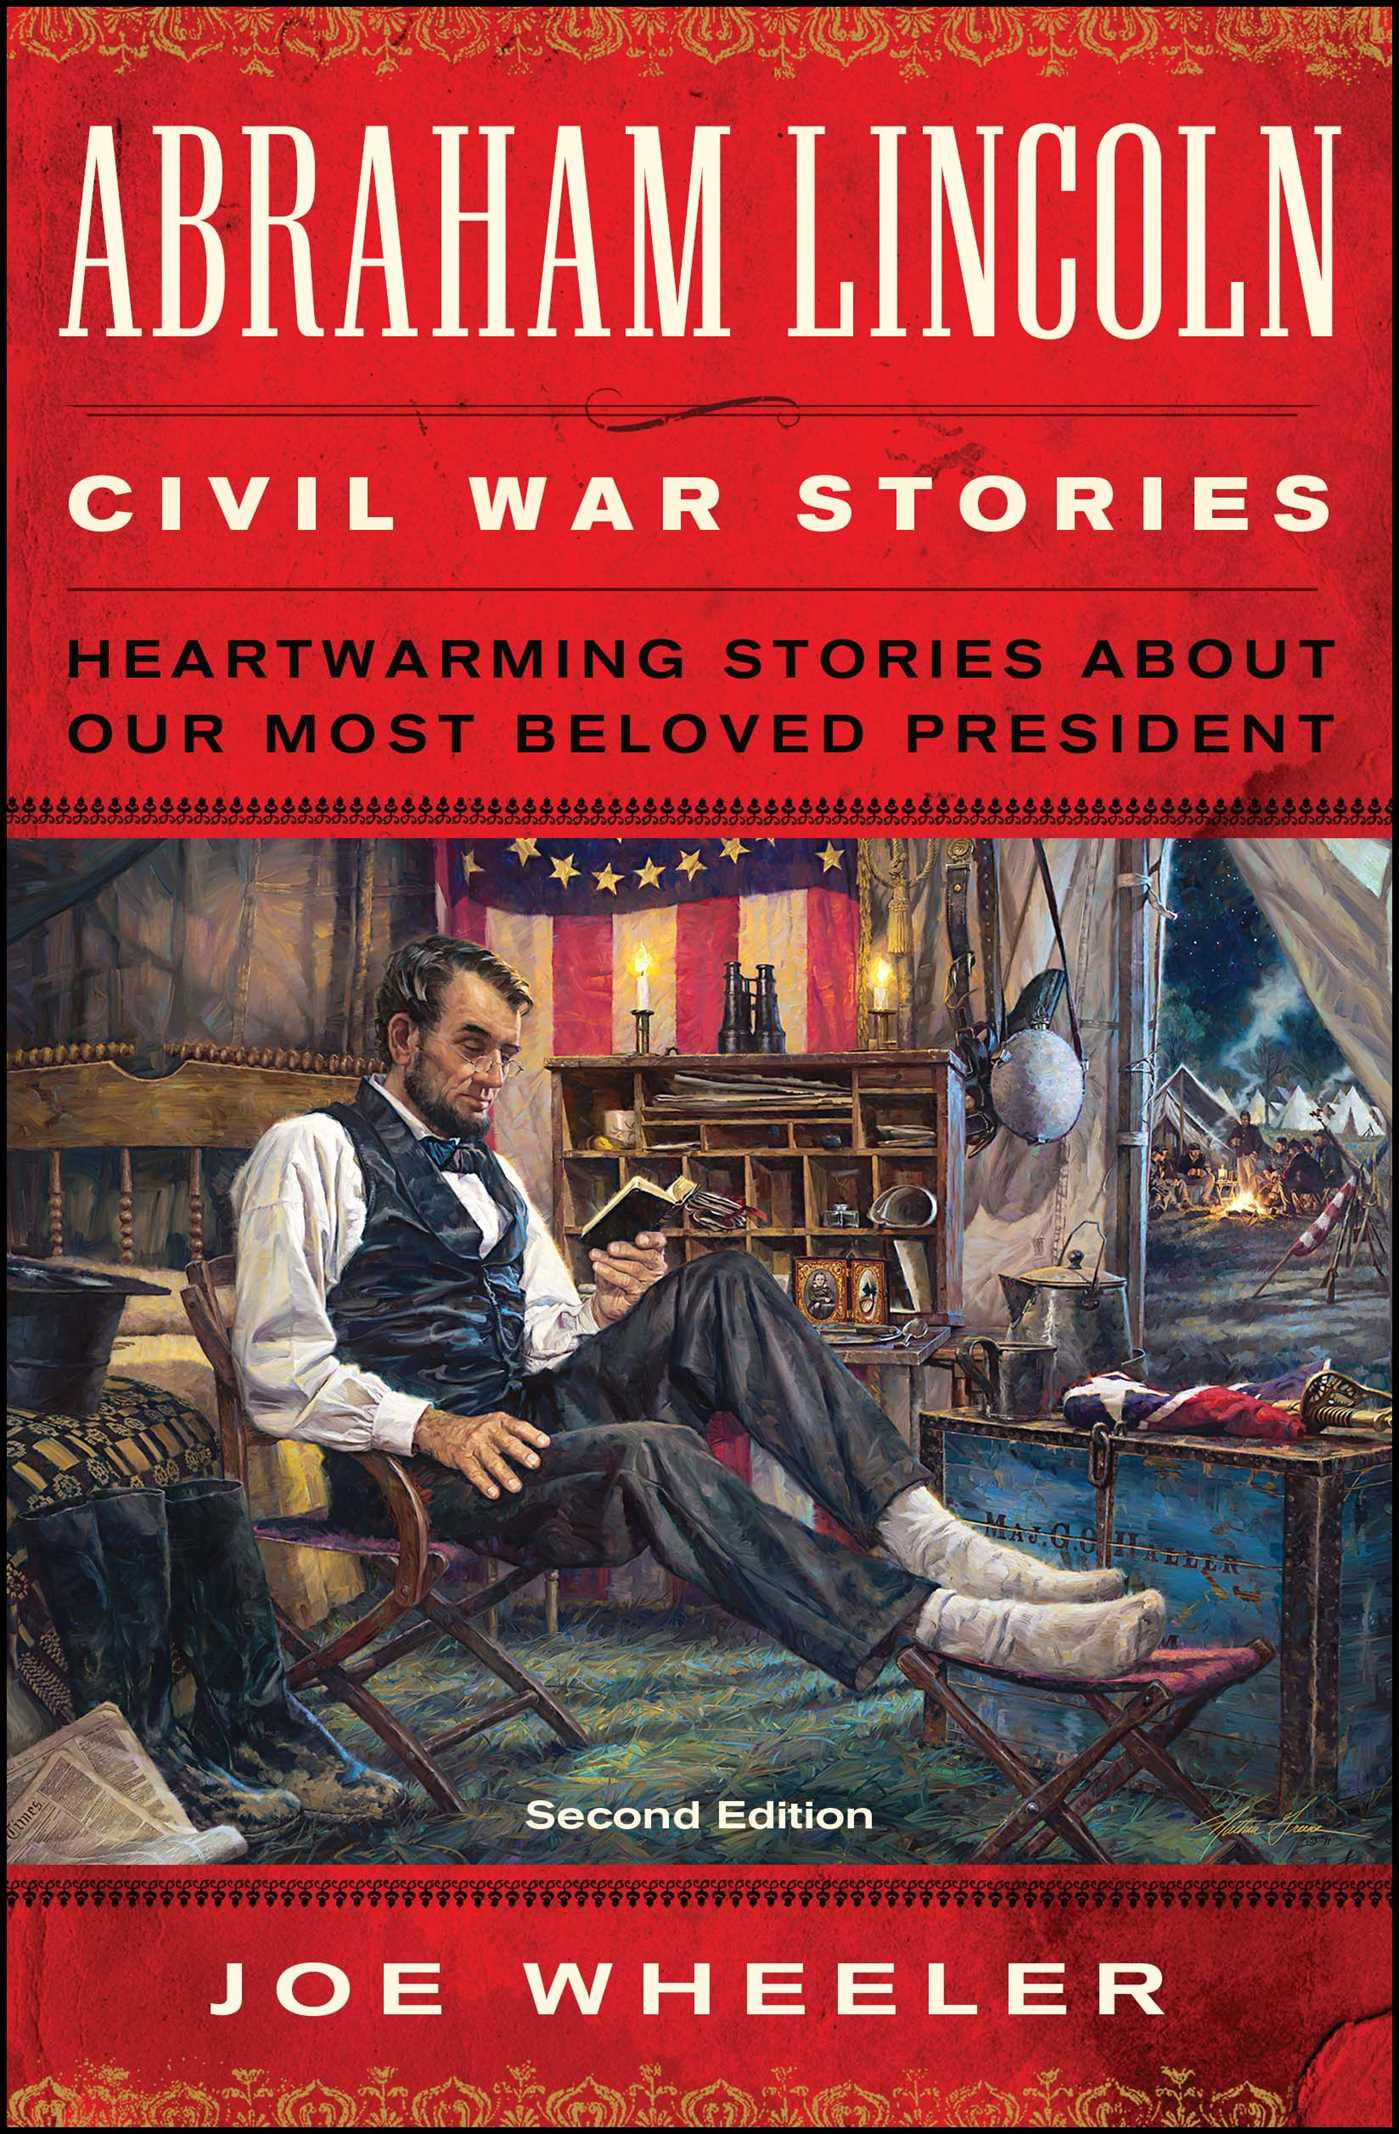 Abraham lincoln civil war stories second edition 9781476702902 hr